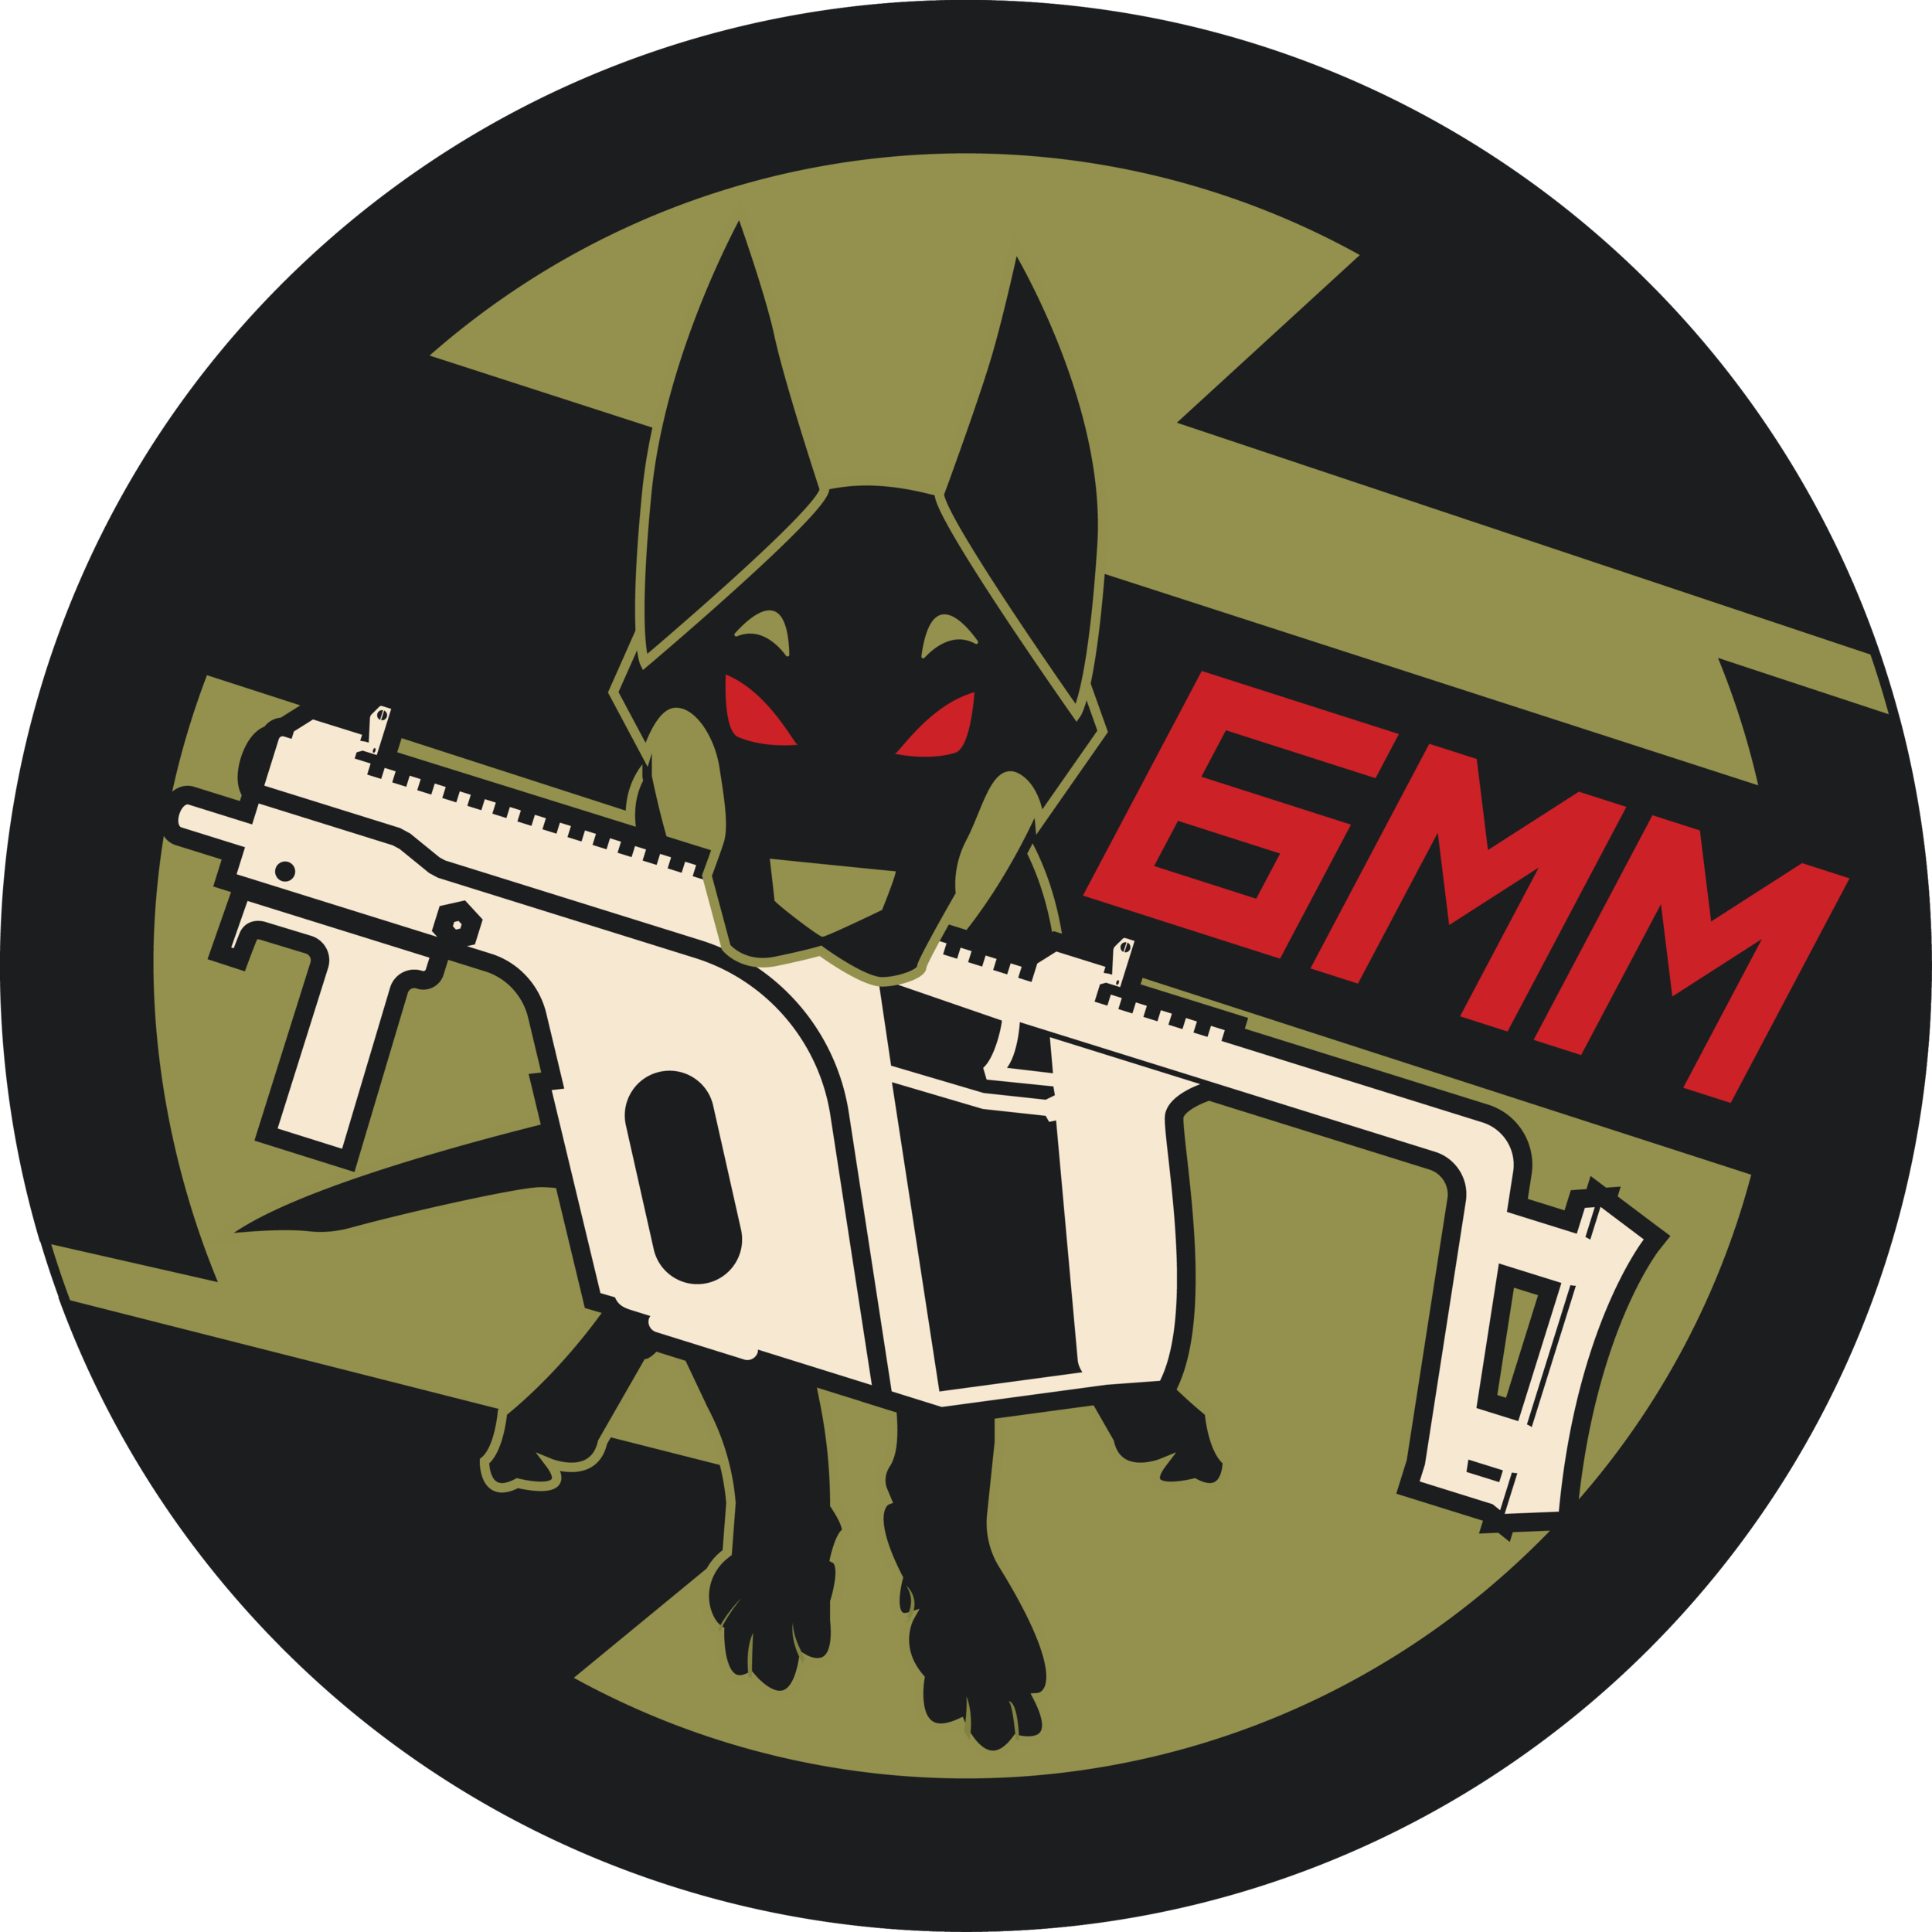 6mm Airsoft Shop